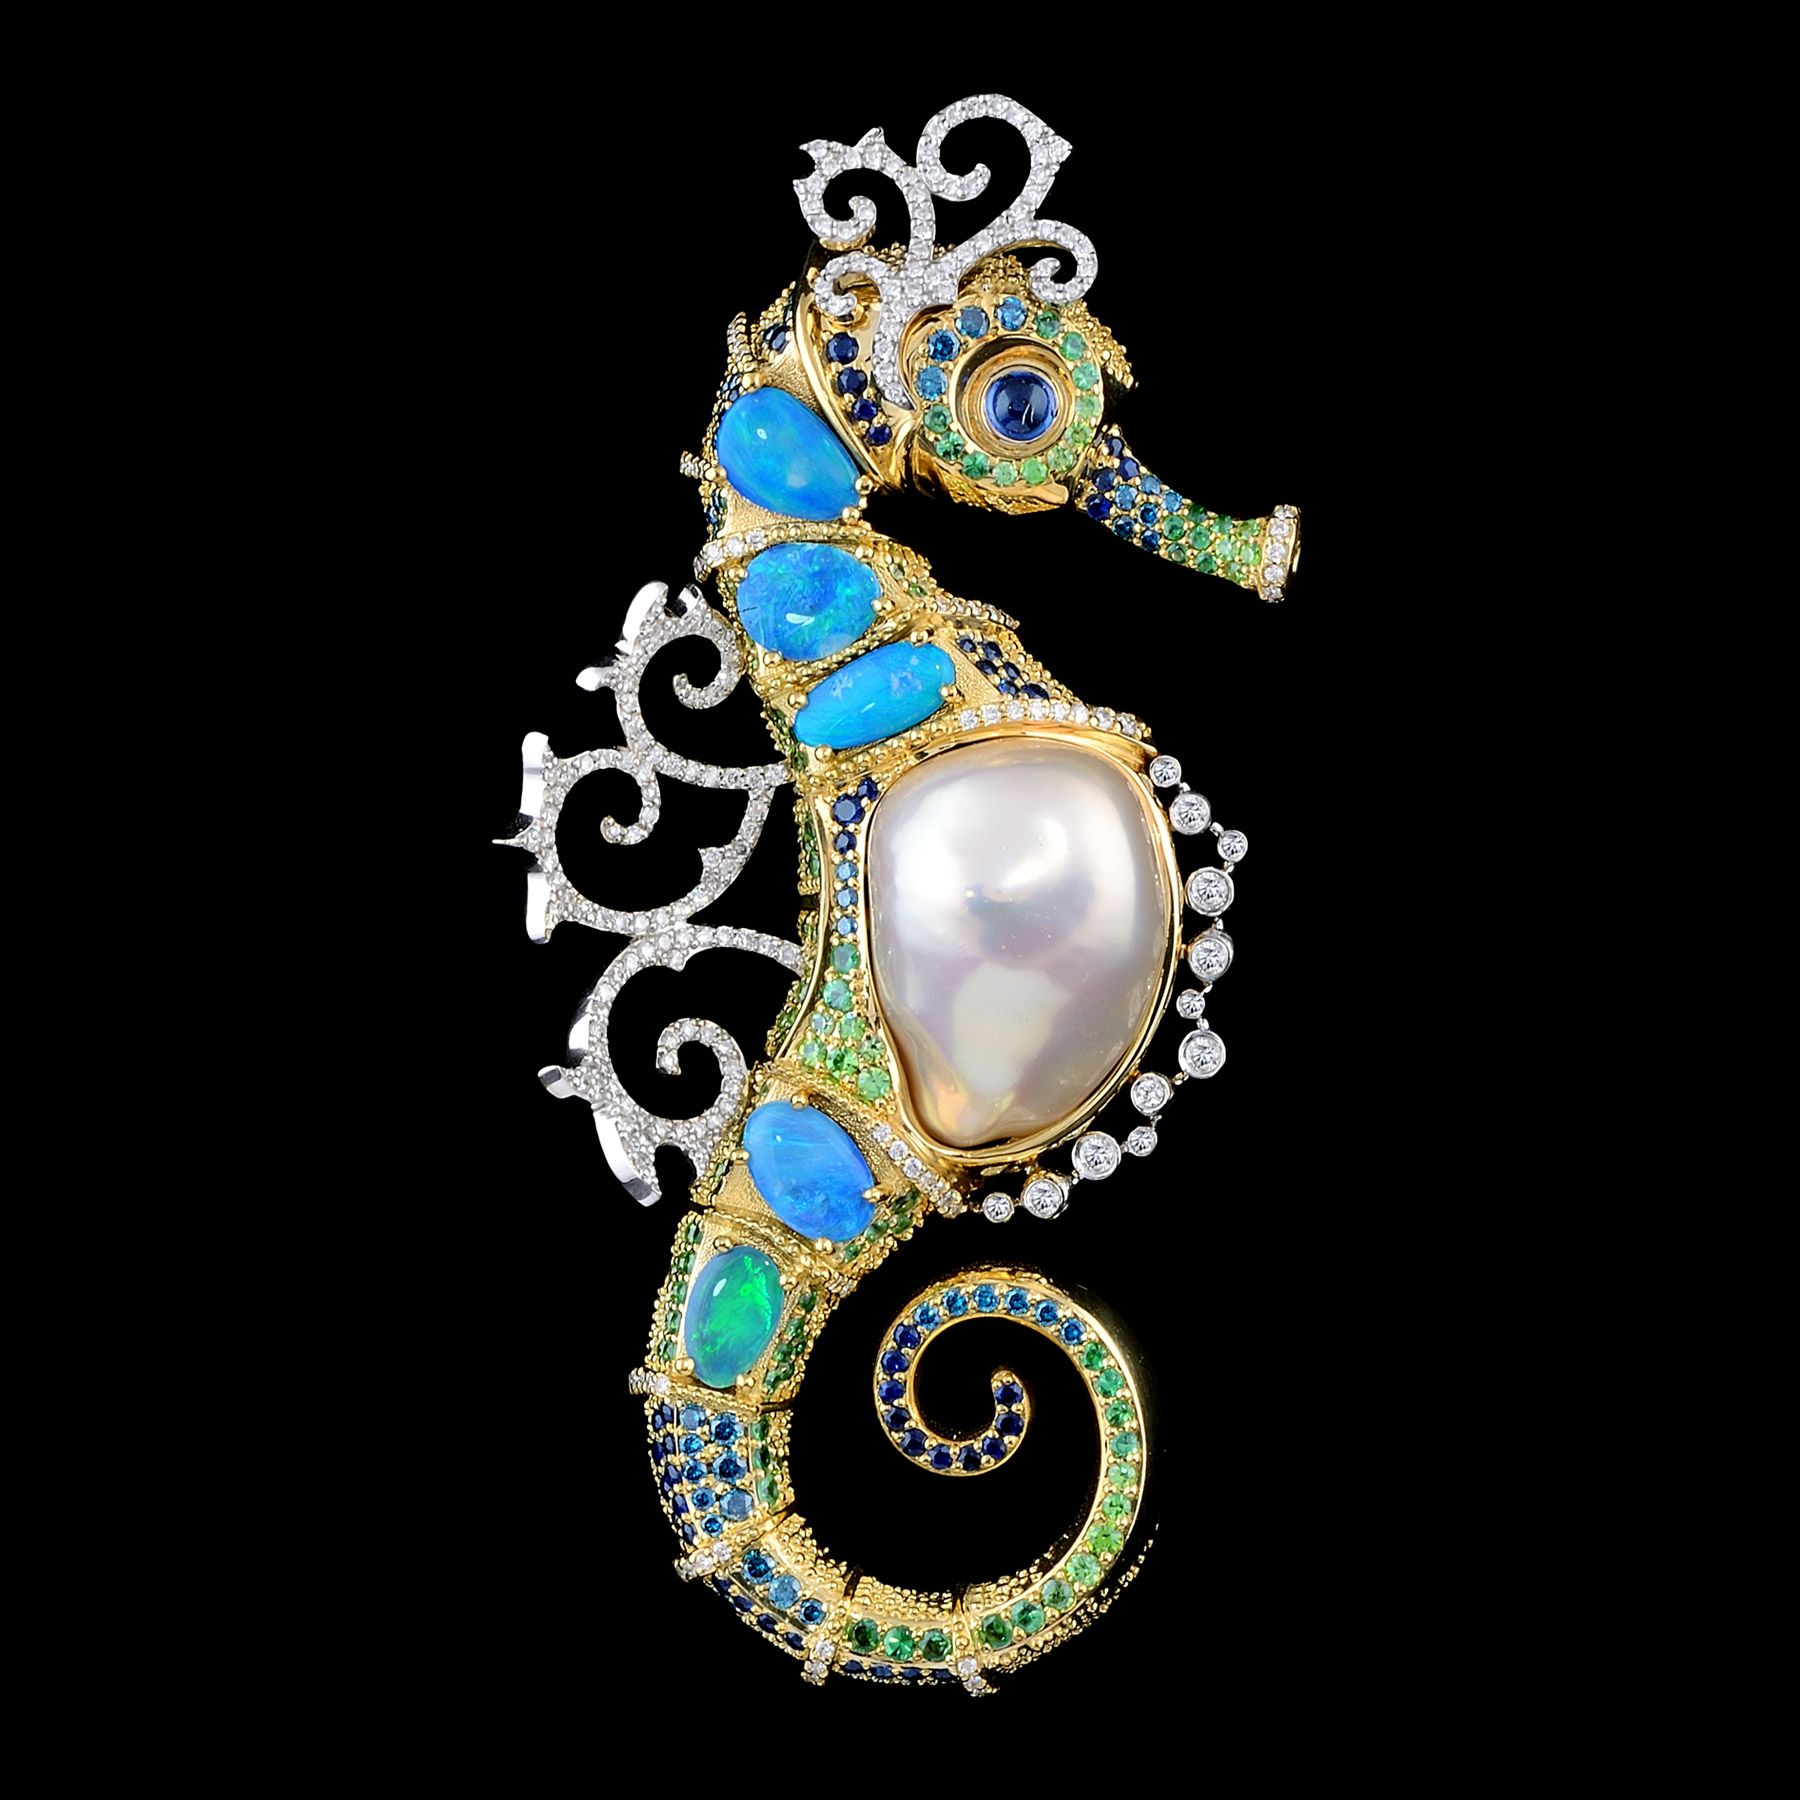 seahorse pendant of 18k yellow and white gold baroque